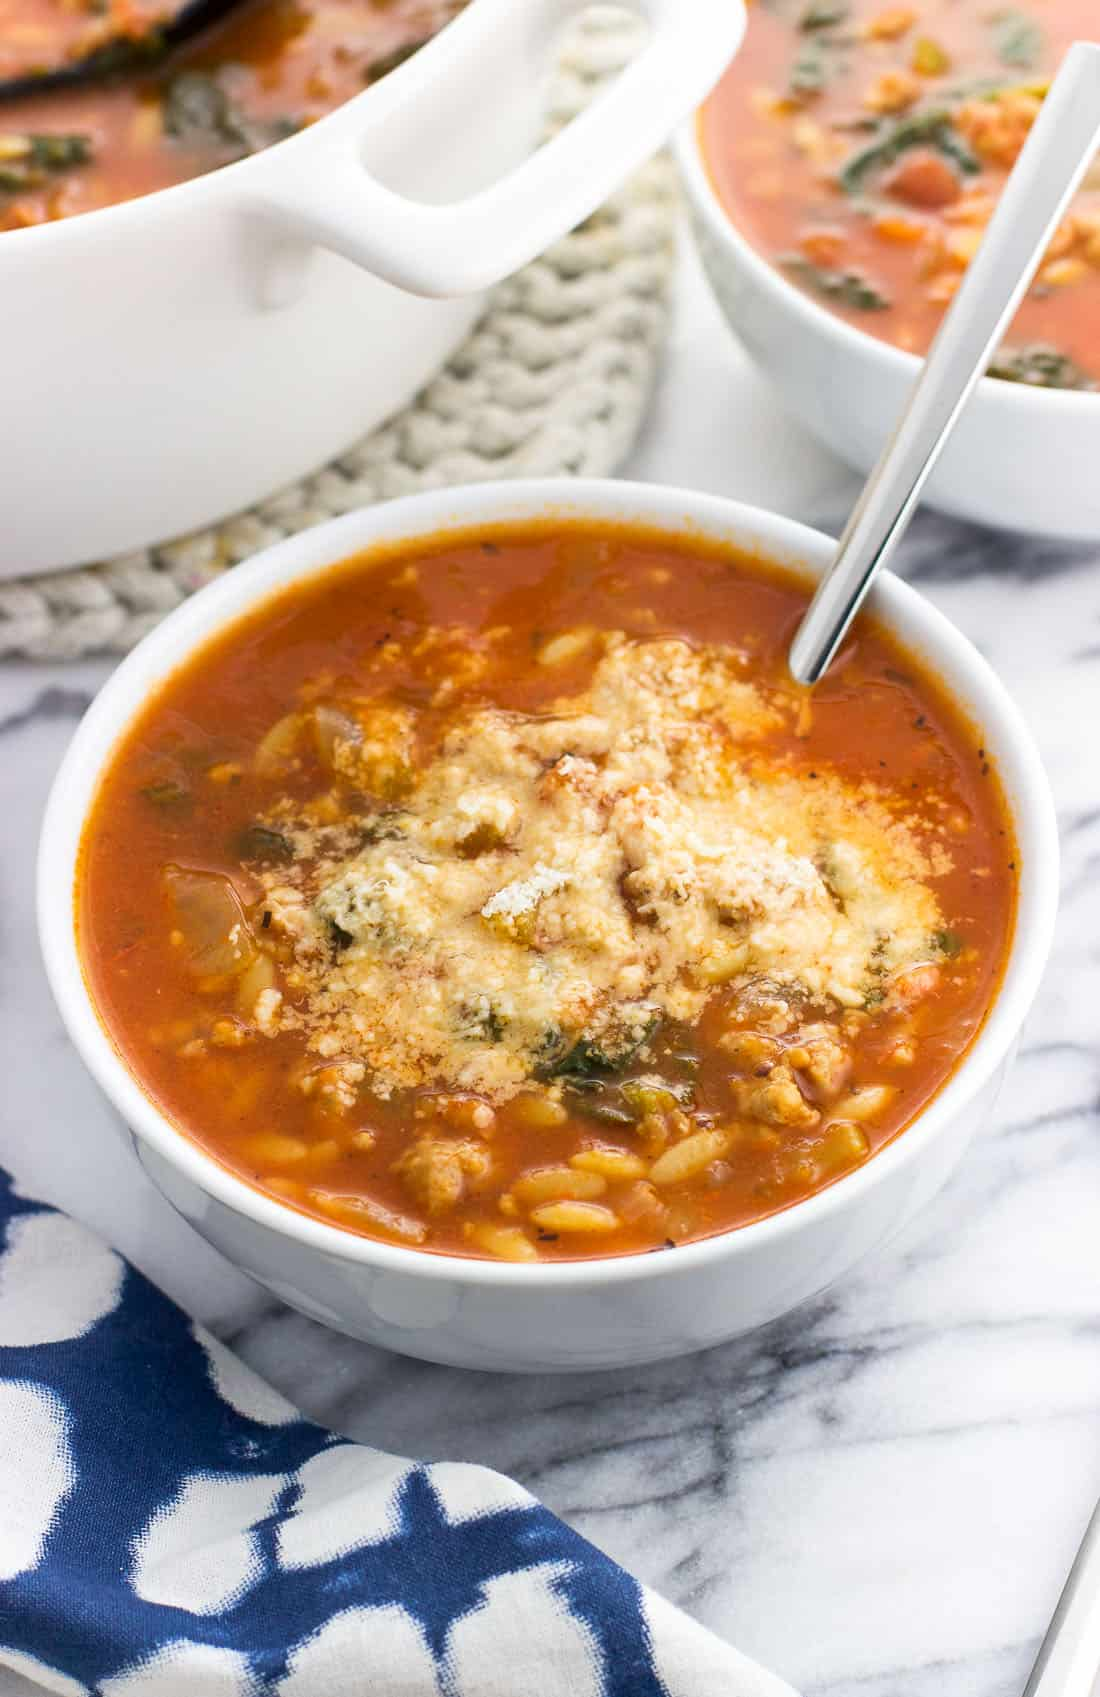 A bowl of soup topped with grated Parmesan cheese